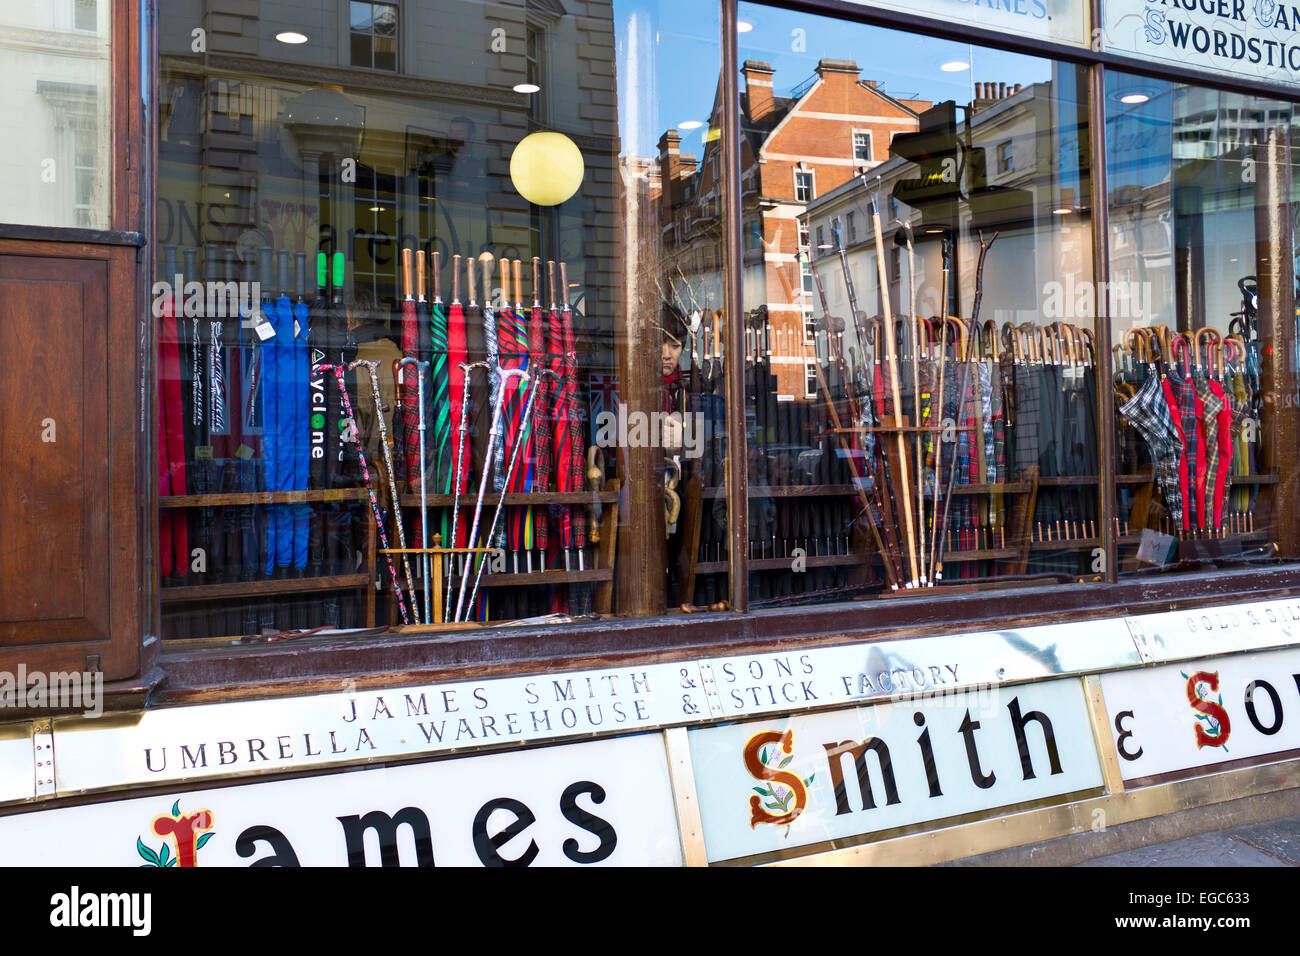 James Smith and Sons,Umbrellas,Walking Sticks,Malacca Canes,Word